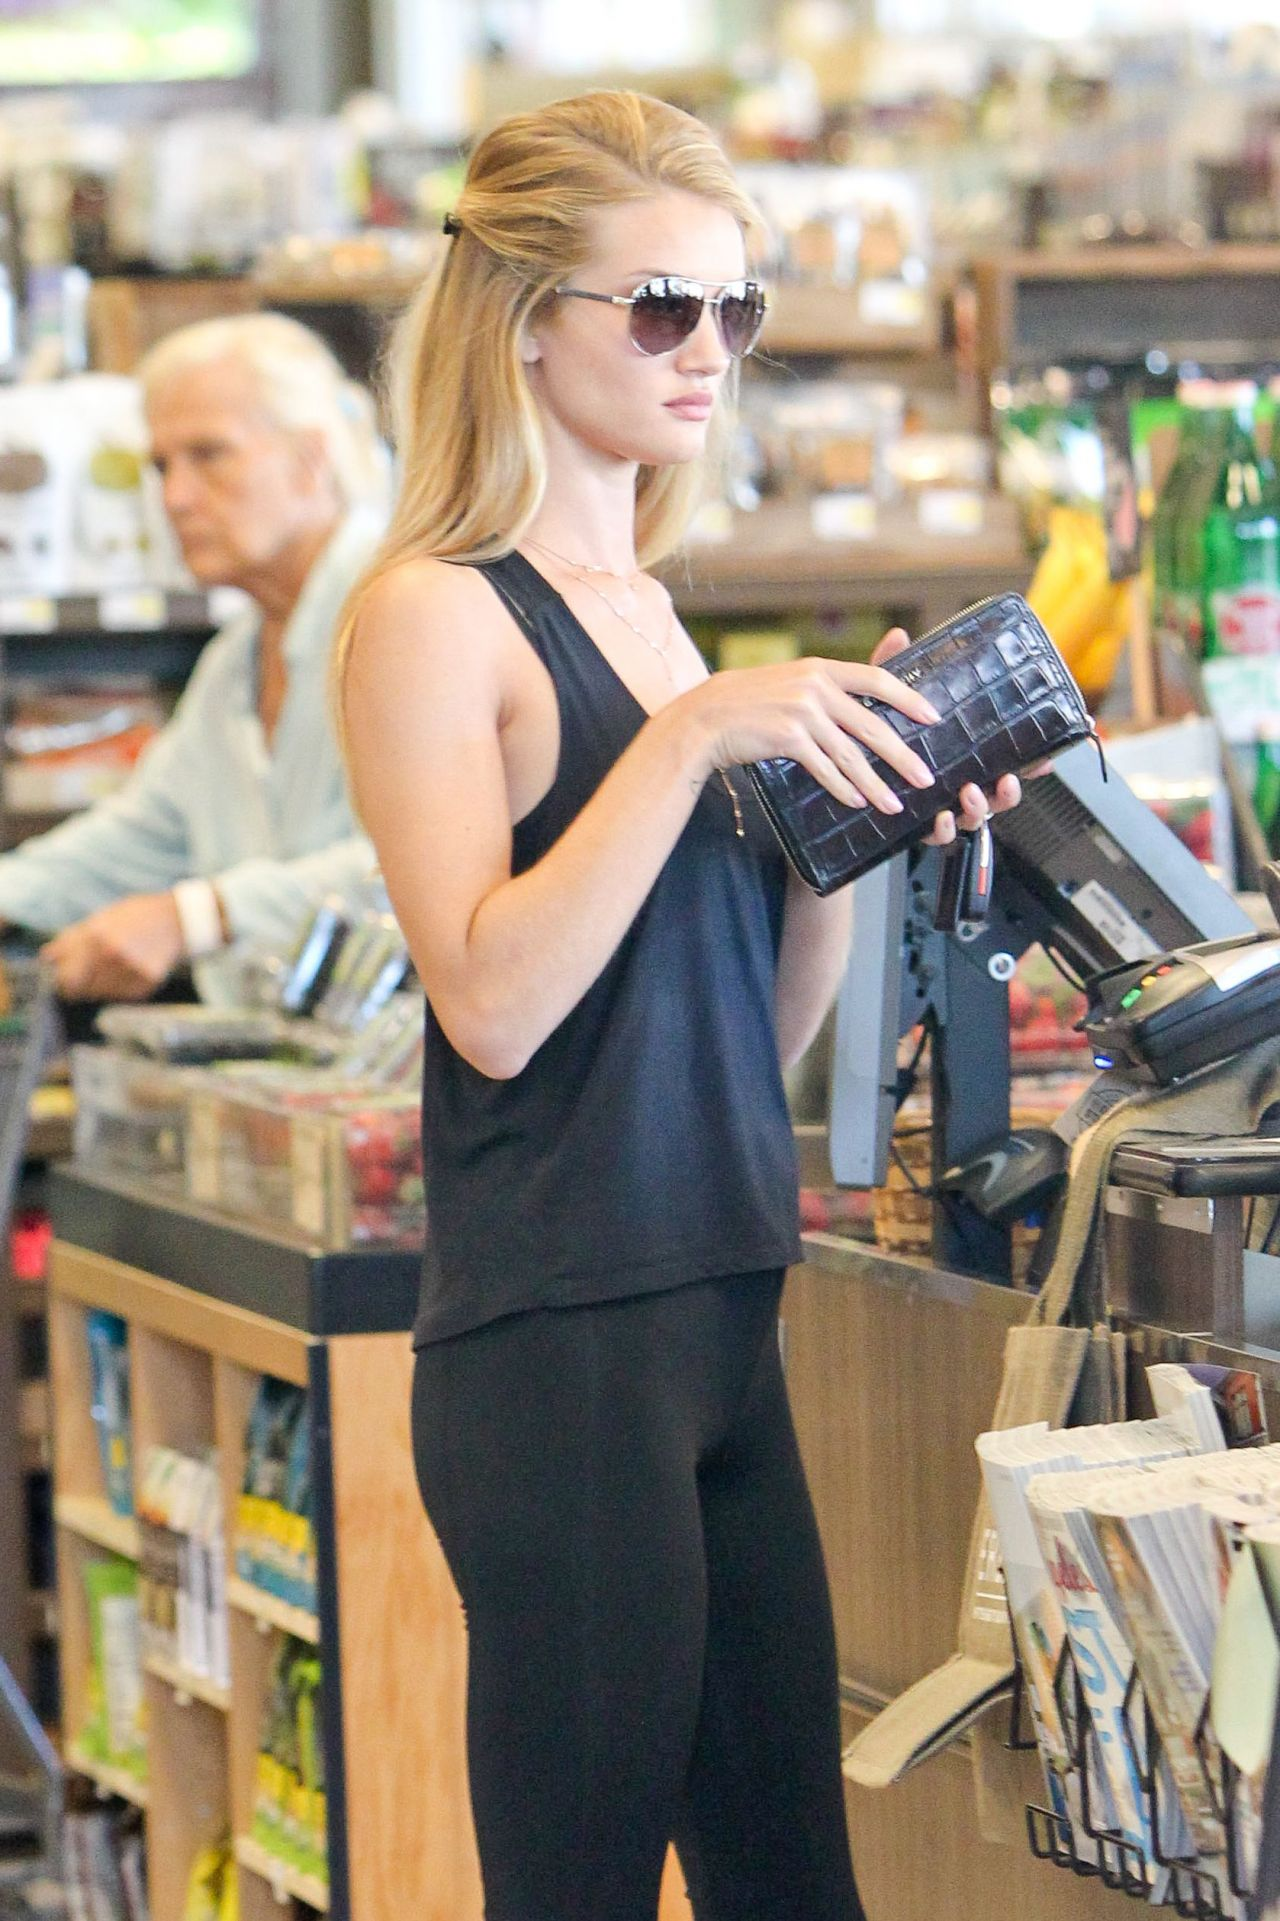 Rosie Huntington-Whiteley at Erewhon Natural Foods Market in West Hollywood - August 2014